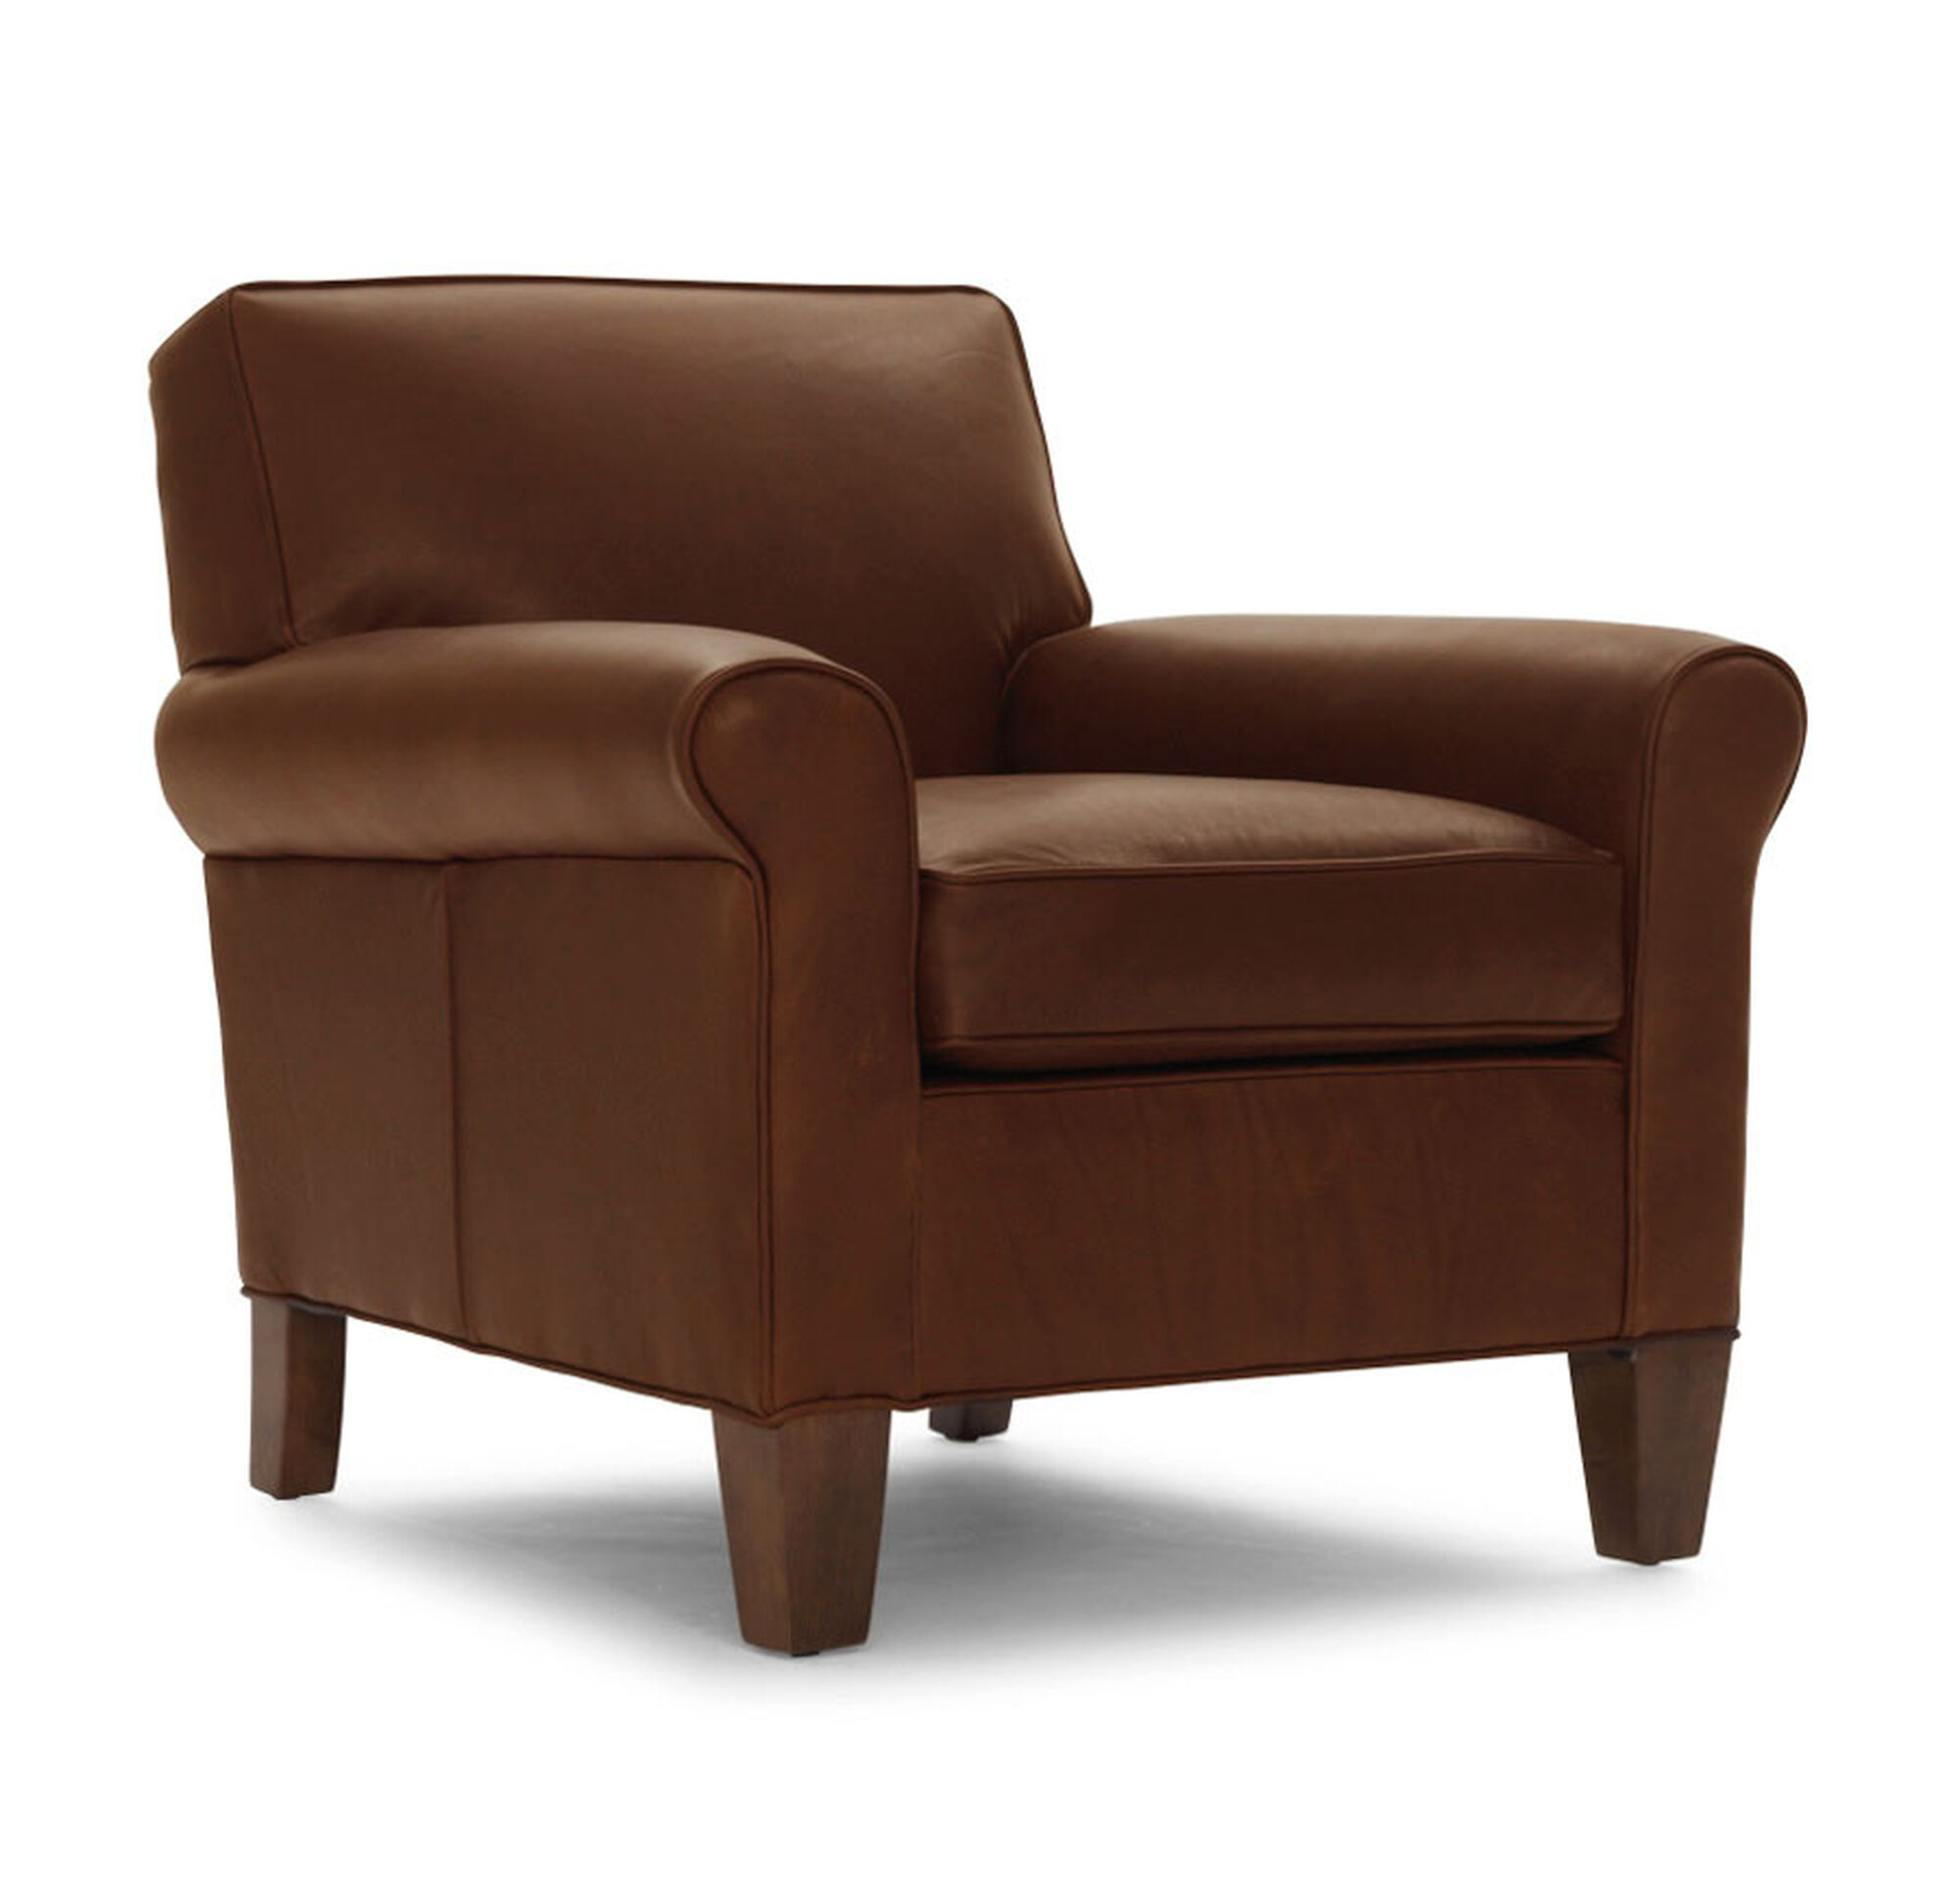 LOLA LEATHER CHAIR